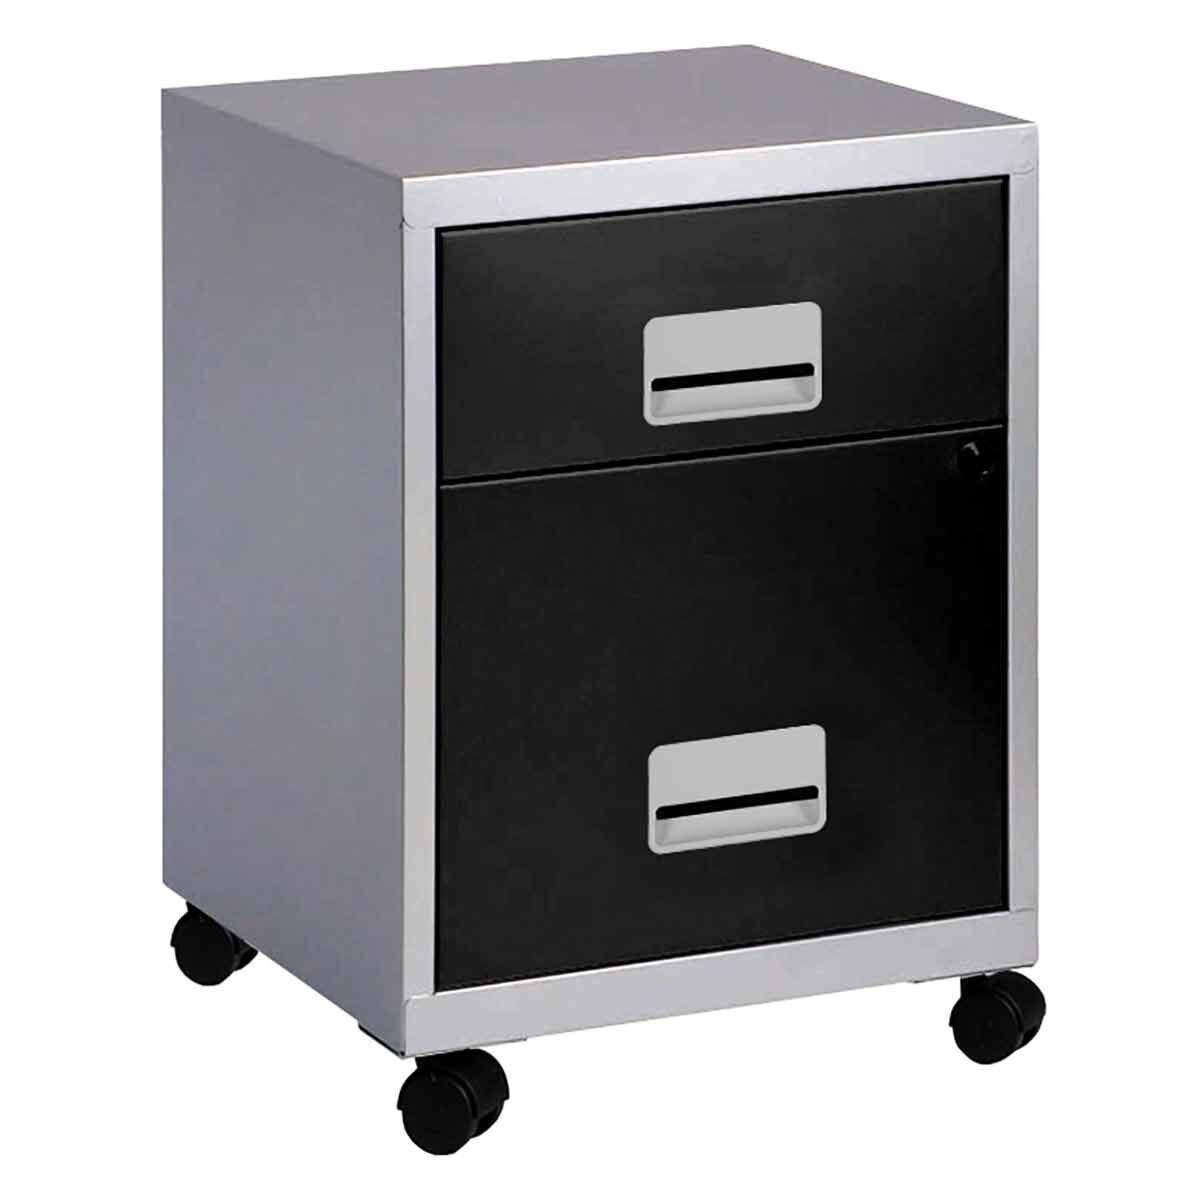 Pierre Henry Combi Filing Cabinet  2 Drawer Silver/Black